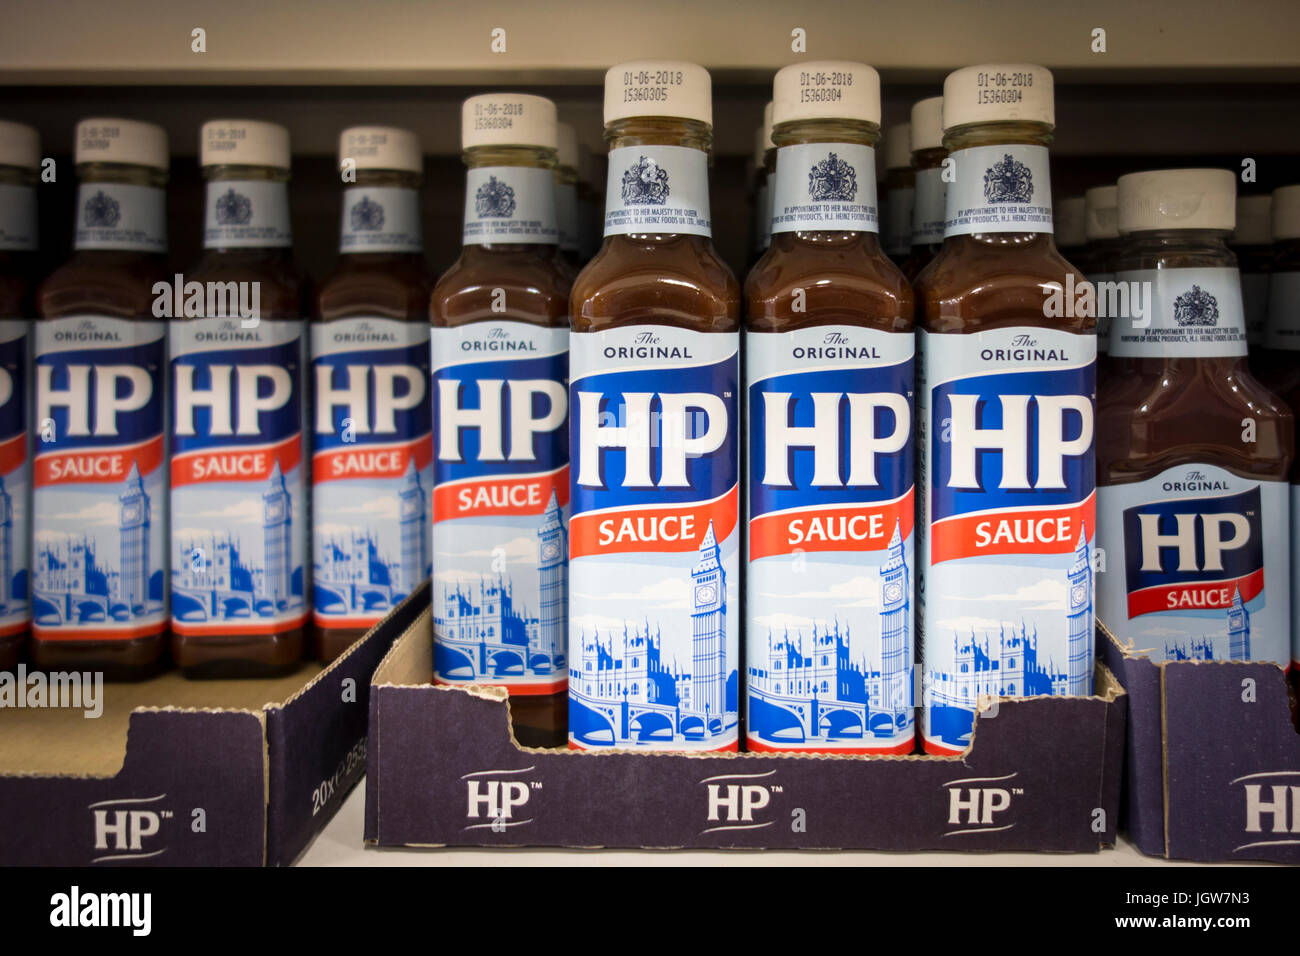 Bottles of HP Sauce for sale on a supermarket shelf in the UK - Stock Image